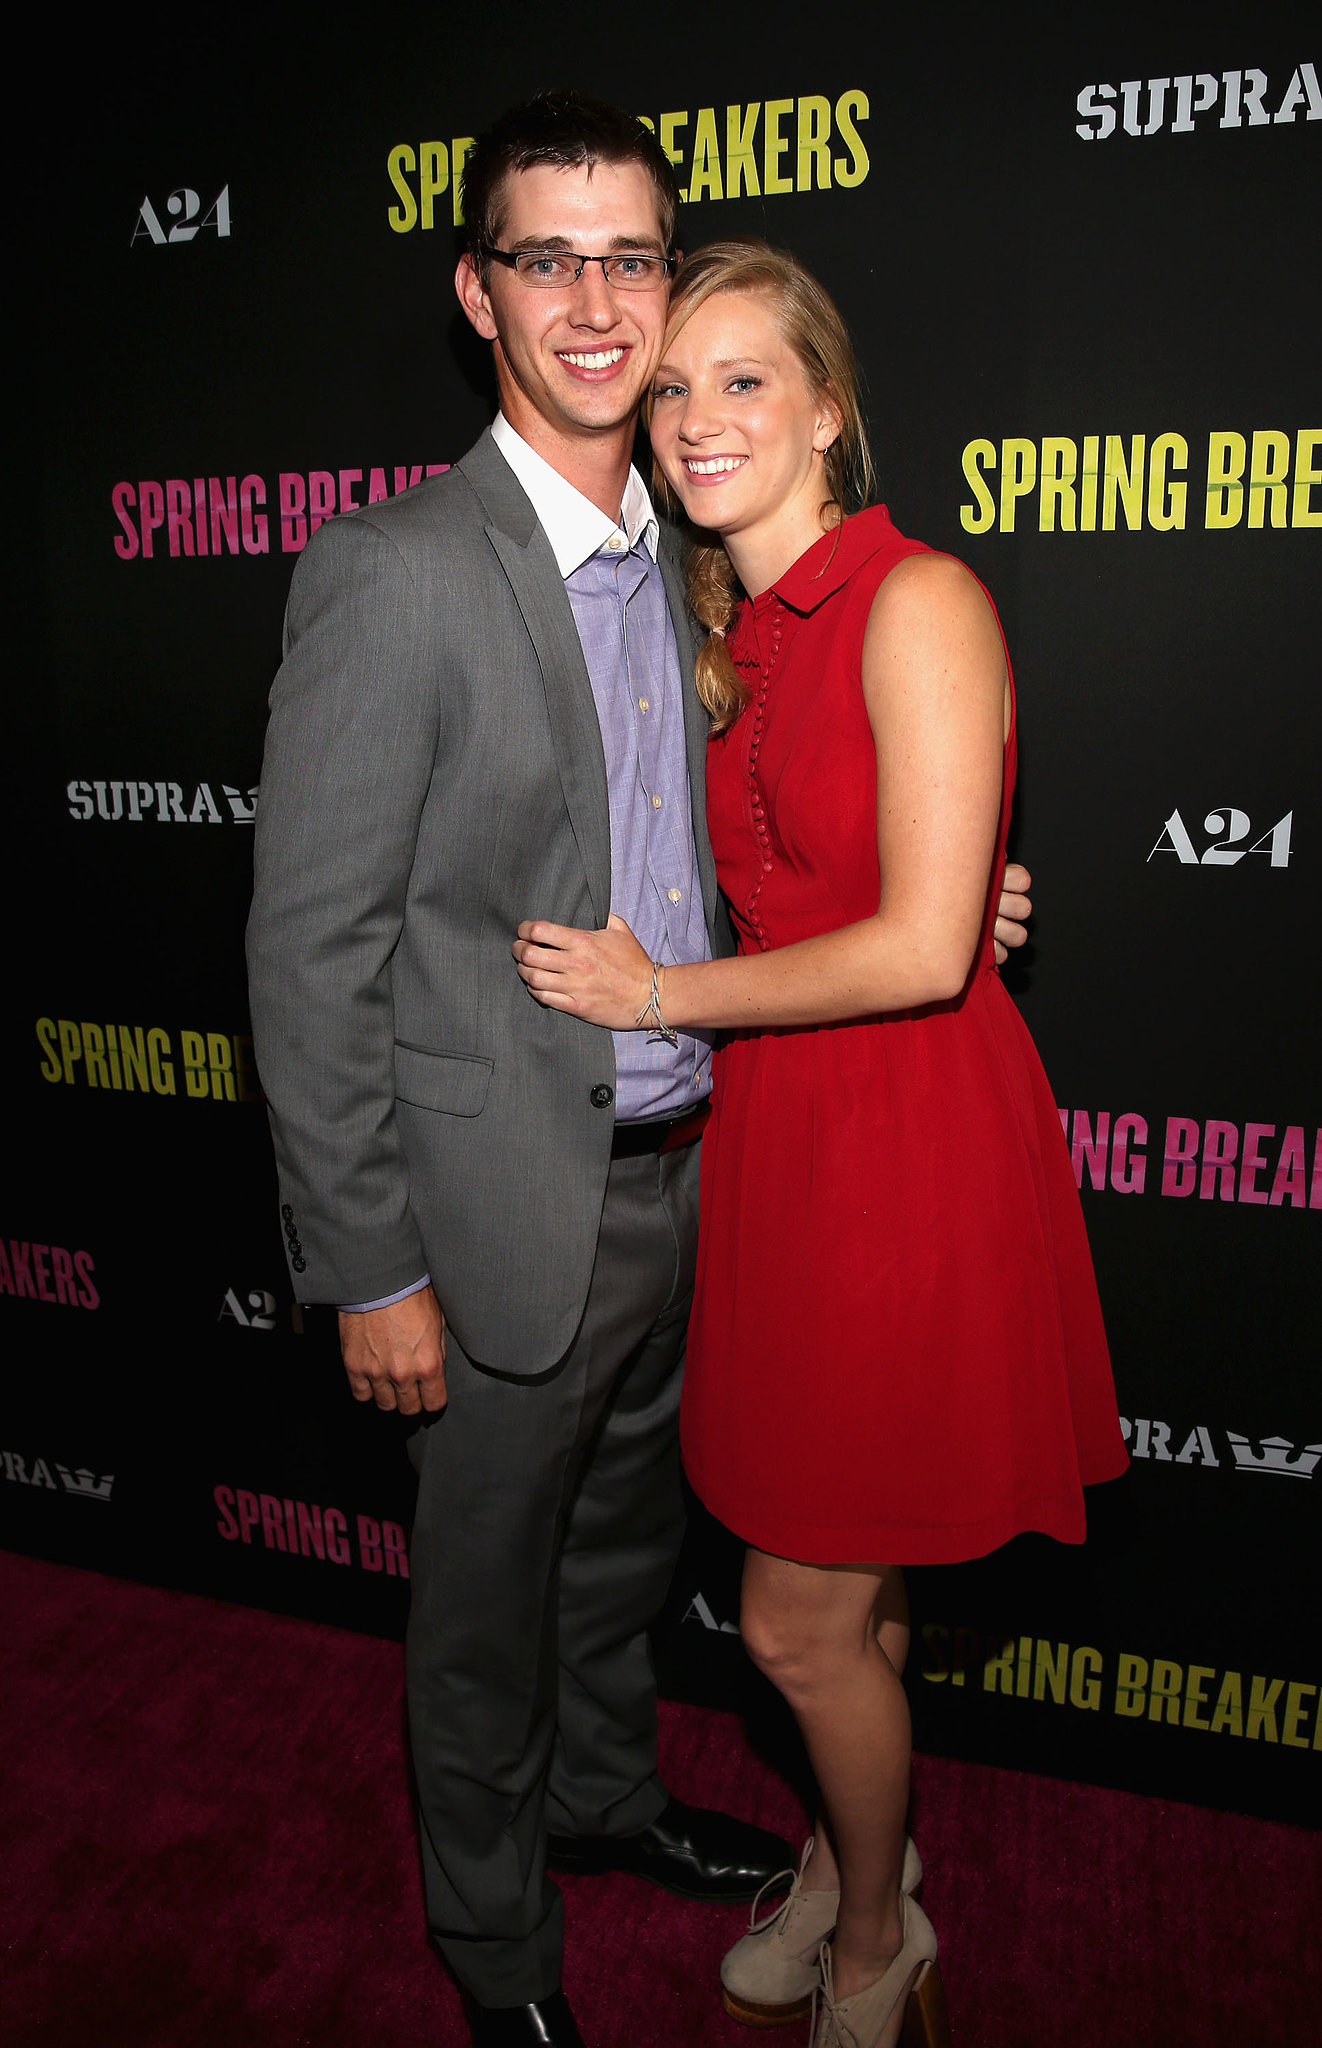 On Sept. 28, Heather Morris and longtime love Taylor Hubbell welcom